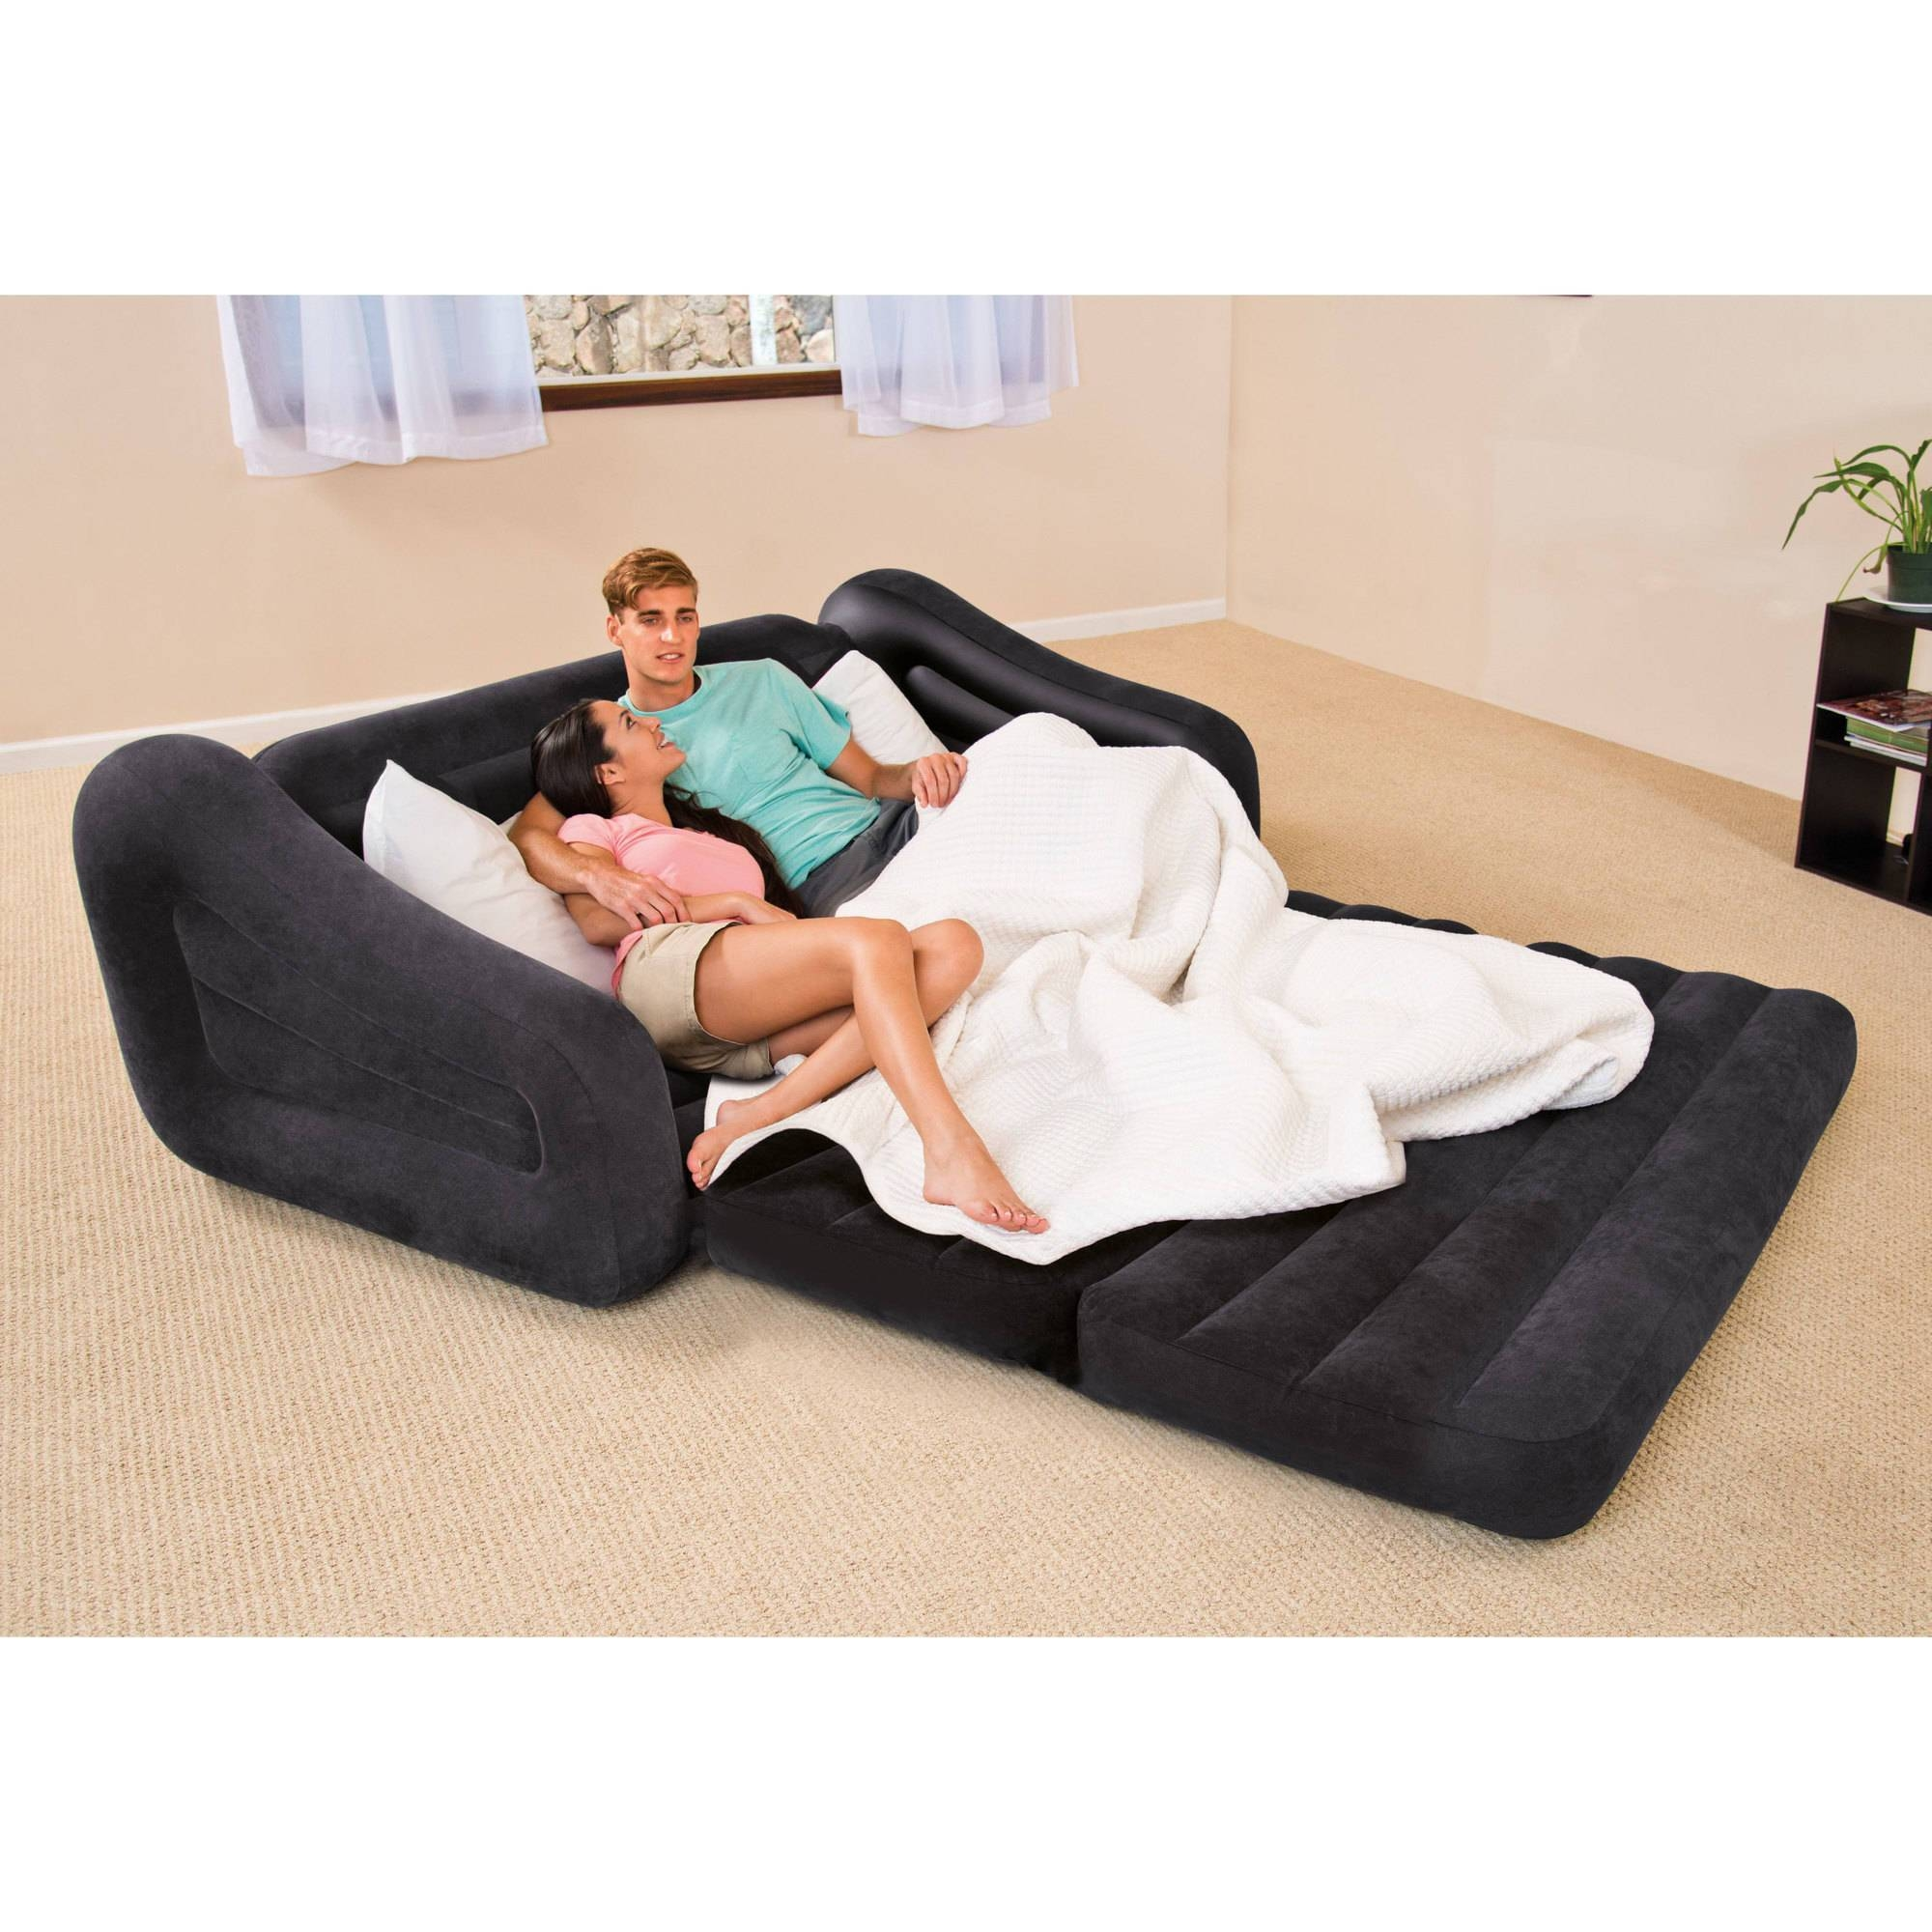 Intex Queen Inflatable Pull Out Sofa Bed - Walmart within Intex Pull Out Chairs (Image 13 of 15)